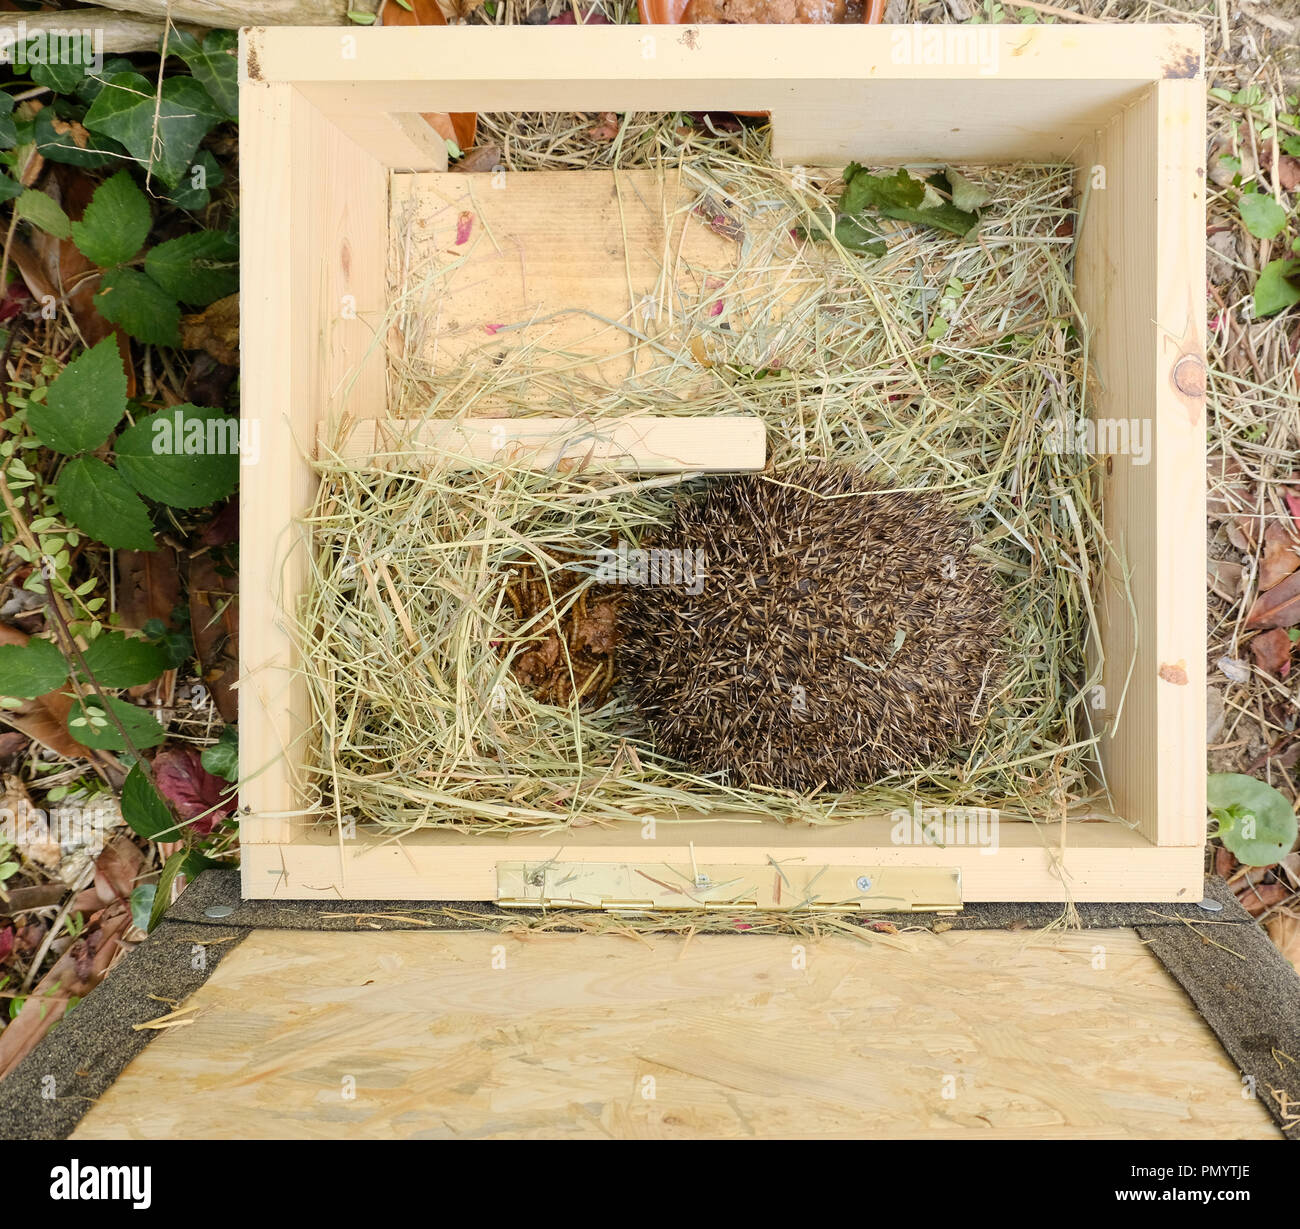 Small European Hedgehog rolled up inside custom made wooden Hedgehog House. Dried Mealworms and cat food have been left in for him. - Stock Image